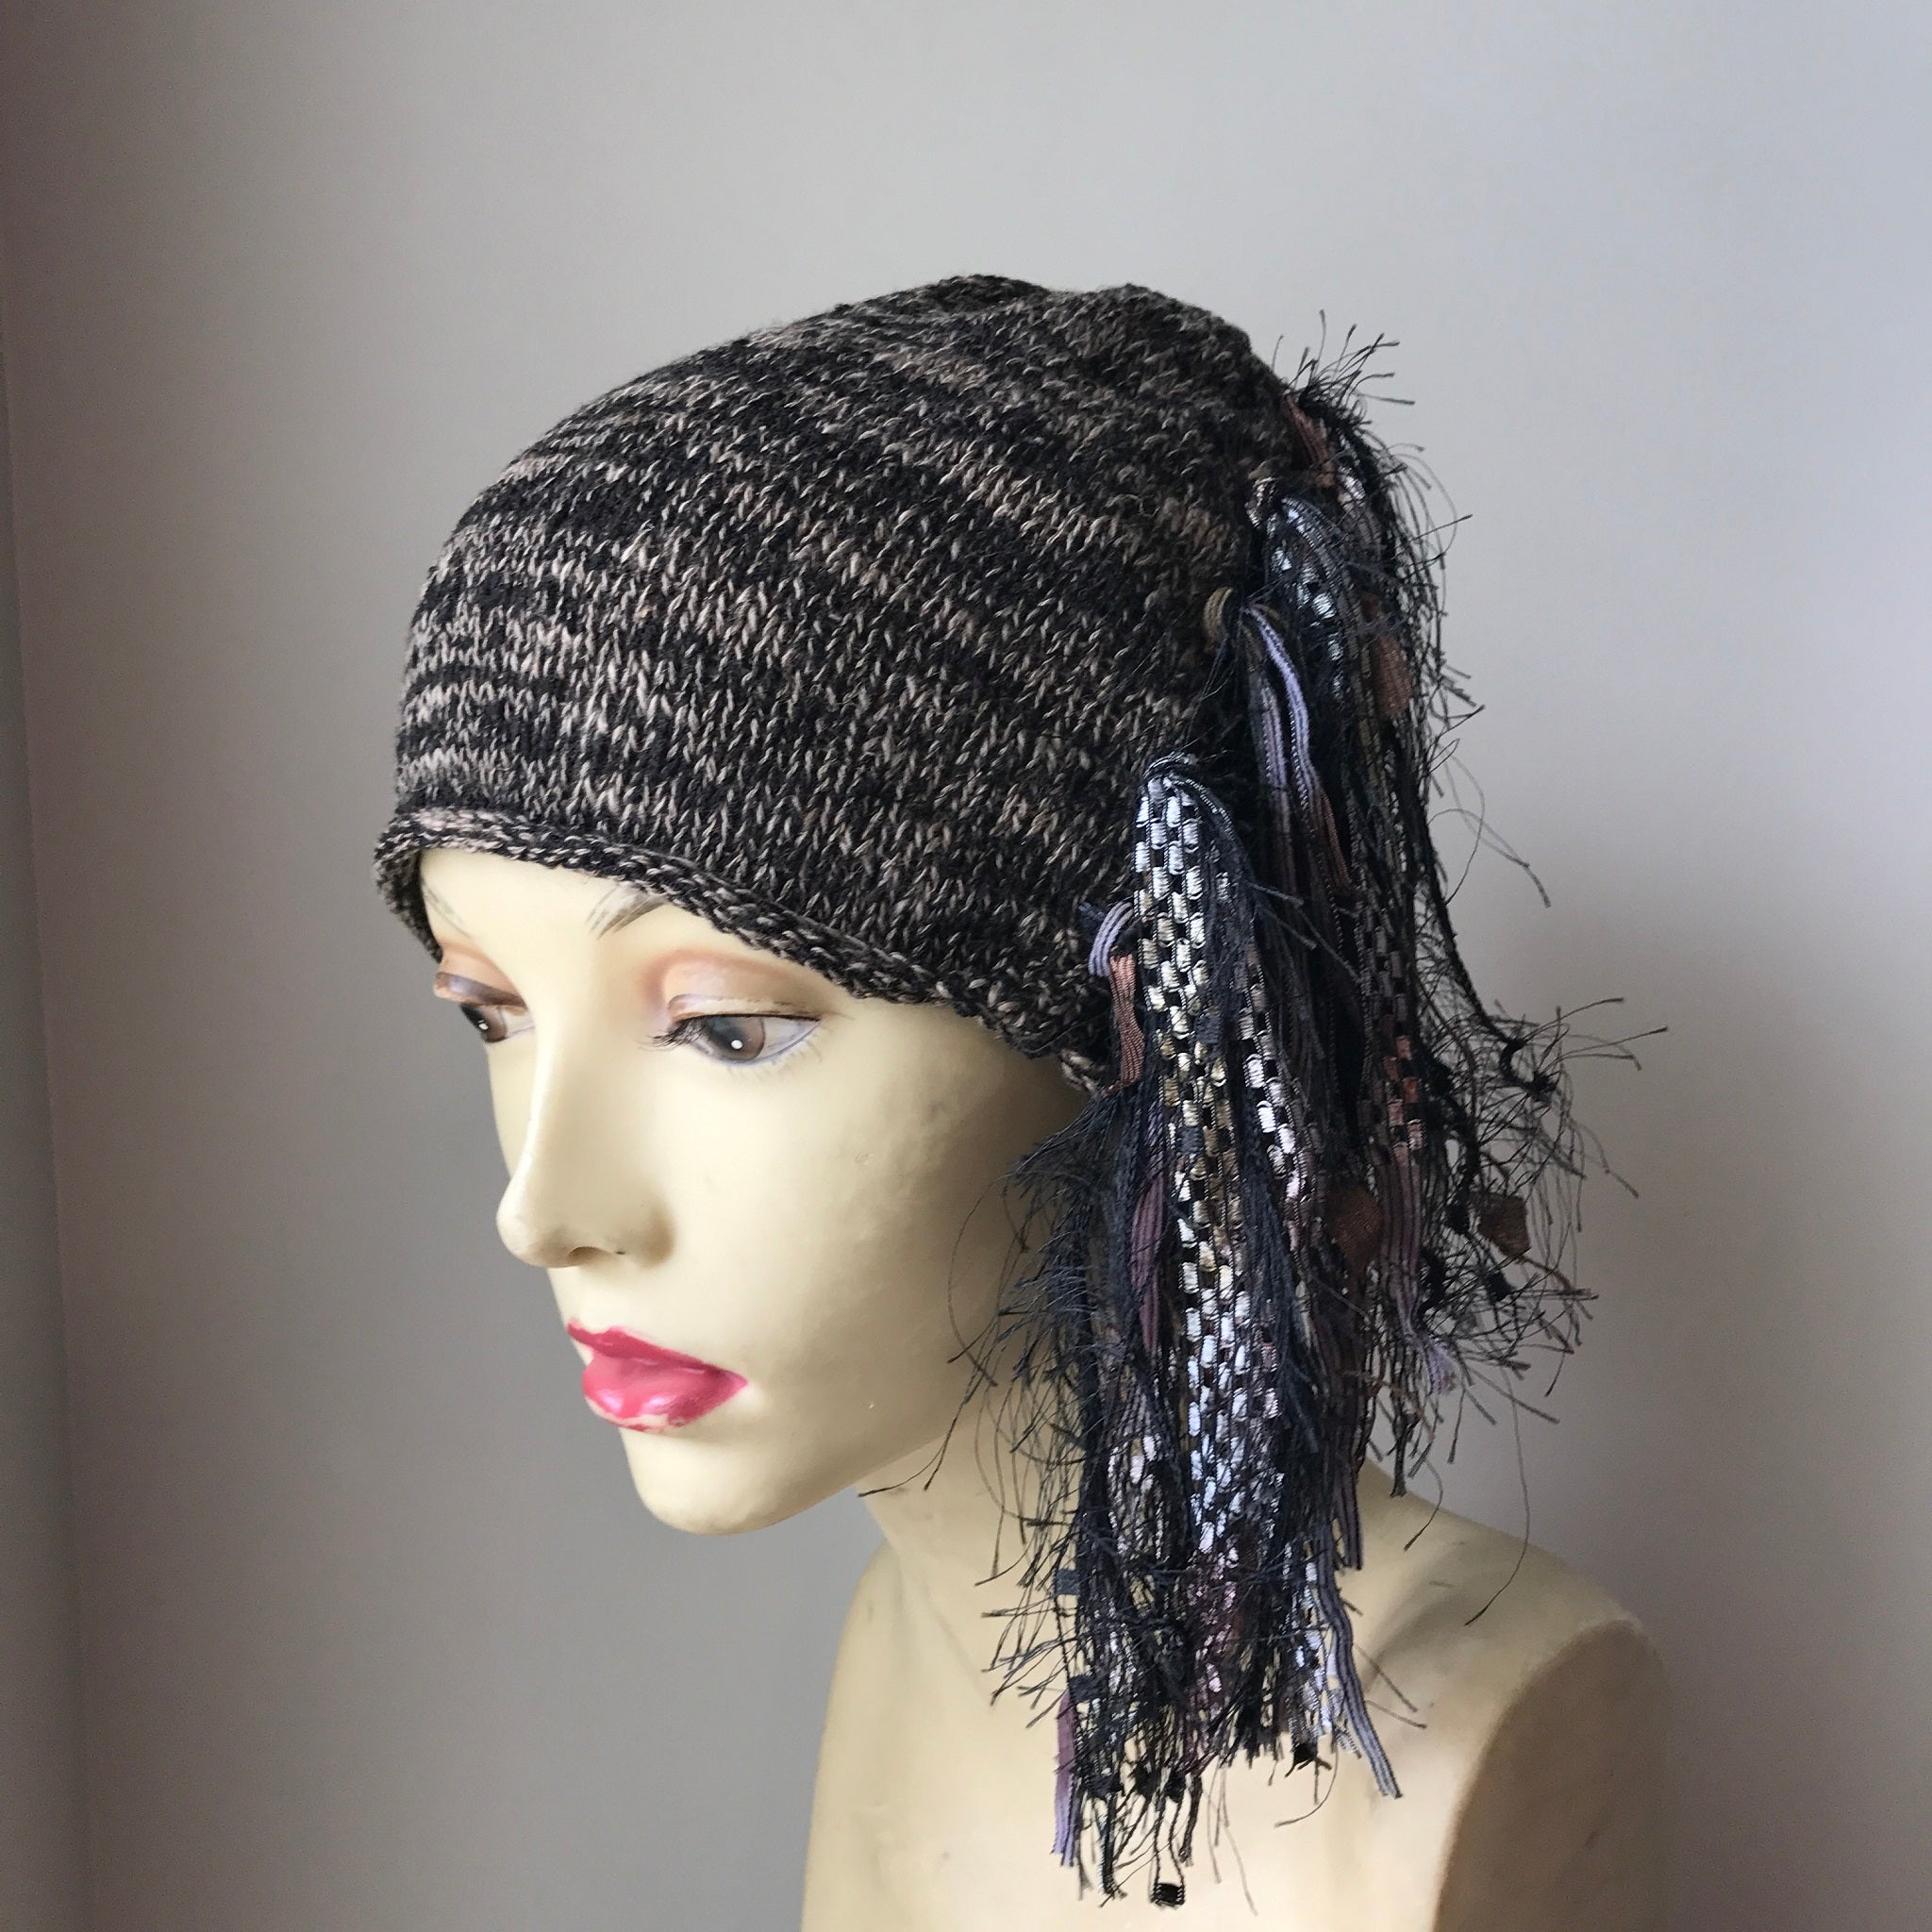 Tan & Black Tweed Funky Chic Hat (FH20)